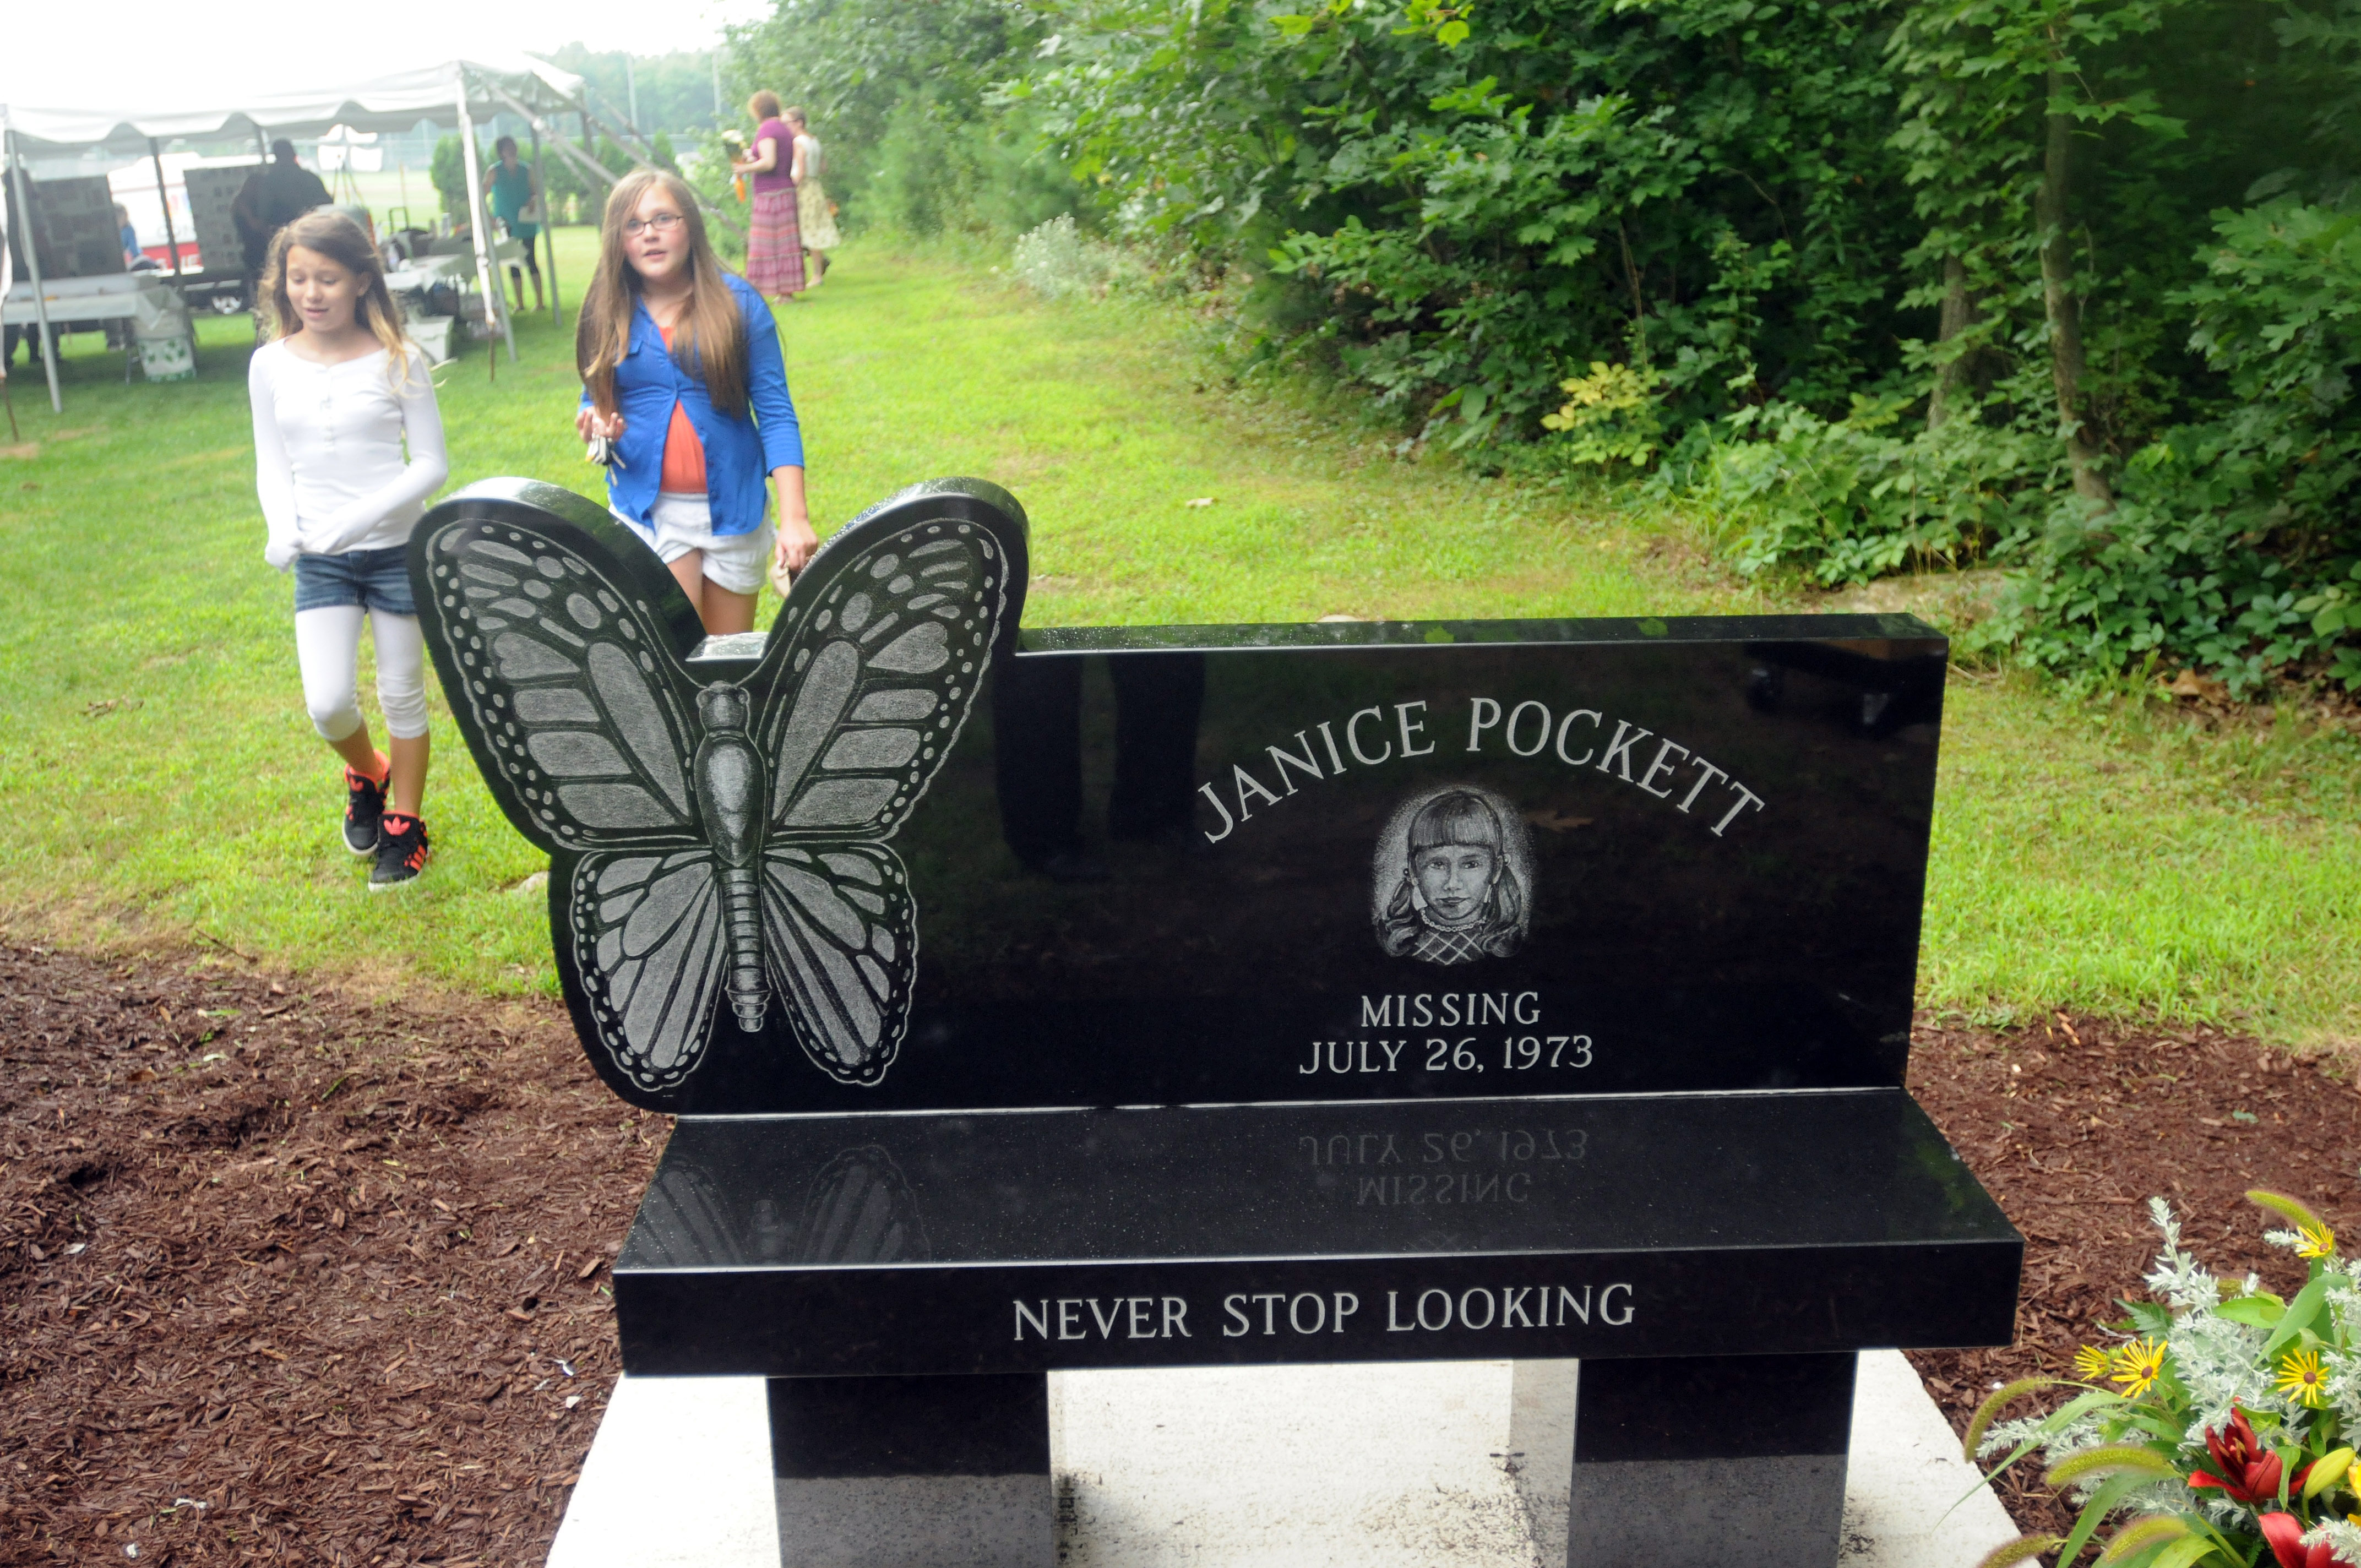 The  bench at the ceremony honoring Janice Pockett.